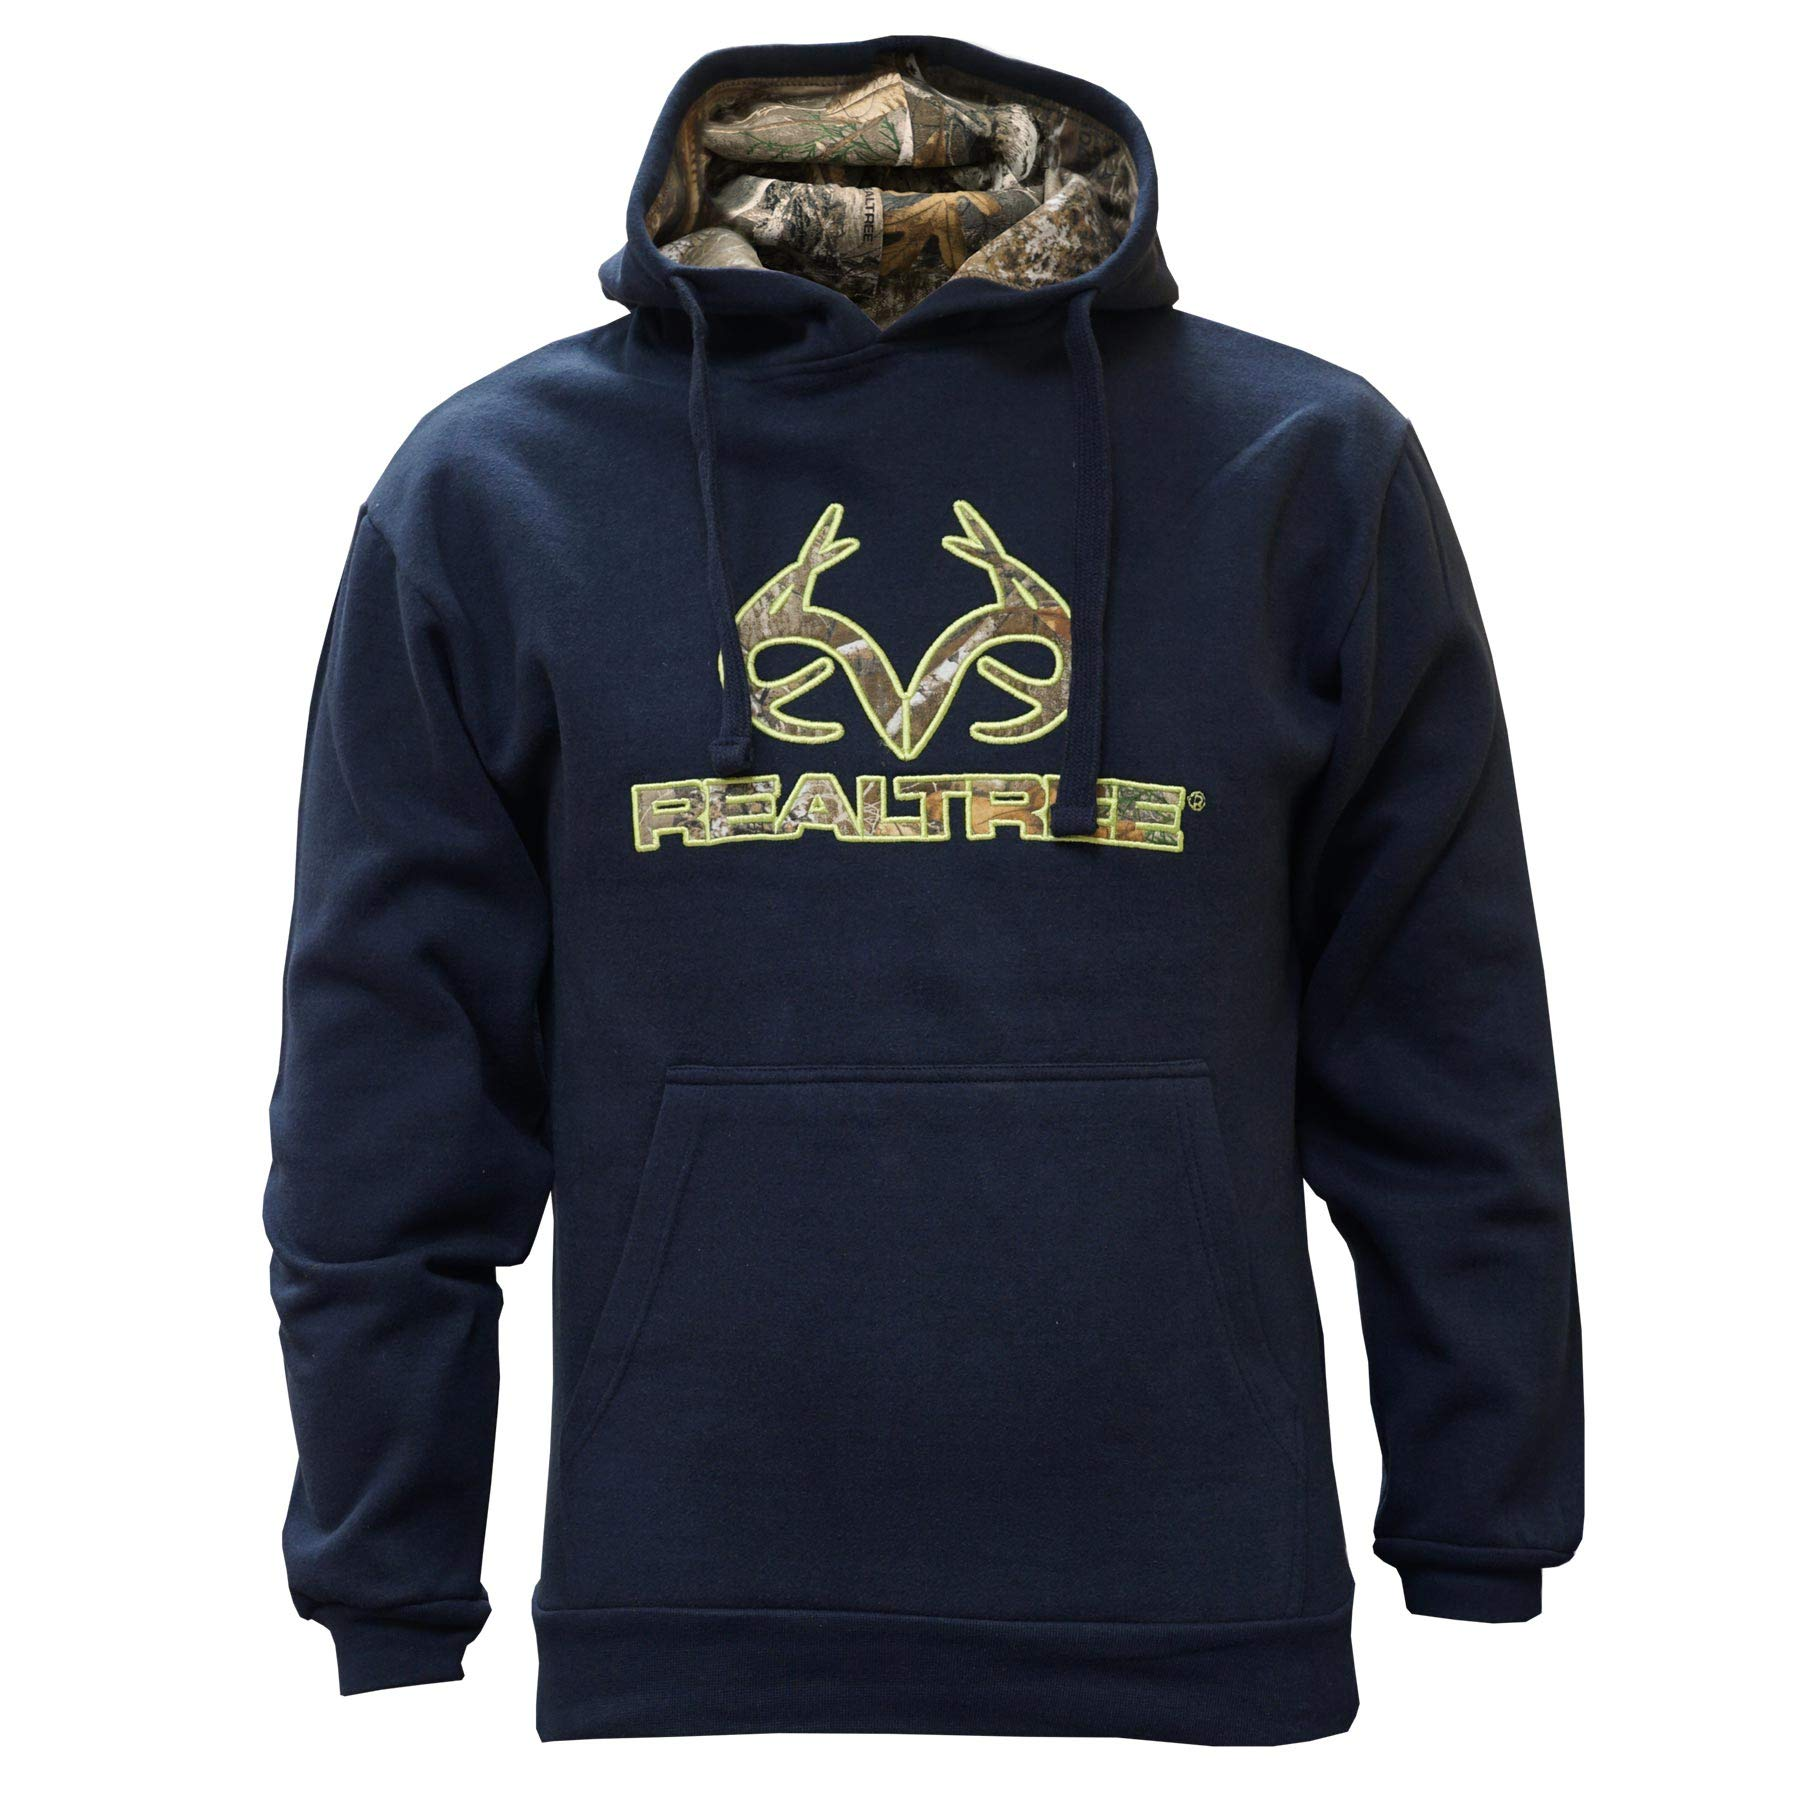 Staghorn Realtree Men's Fleece Applique Hoodie, Airforce Blue, Medium